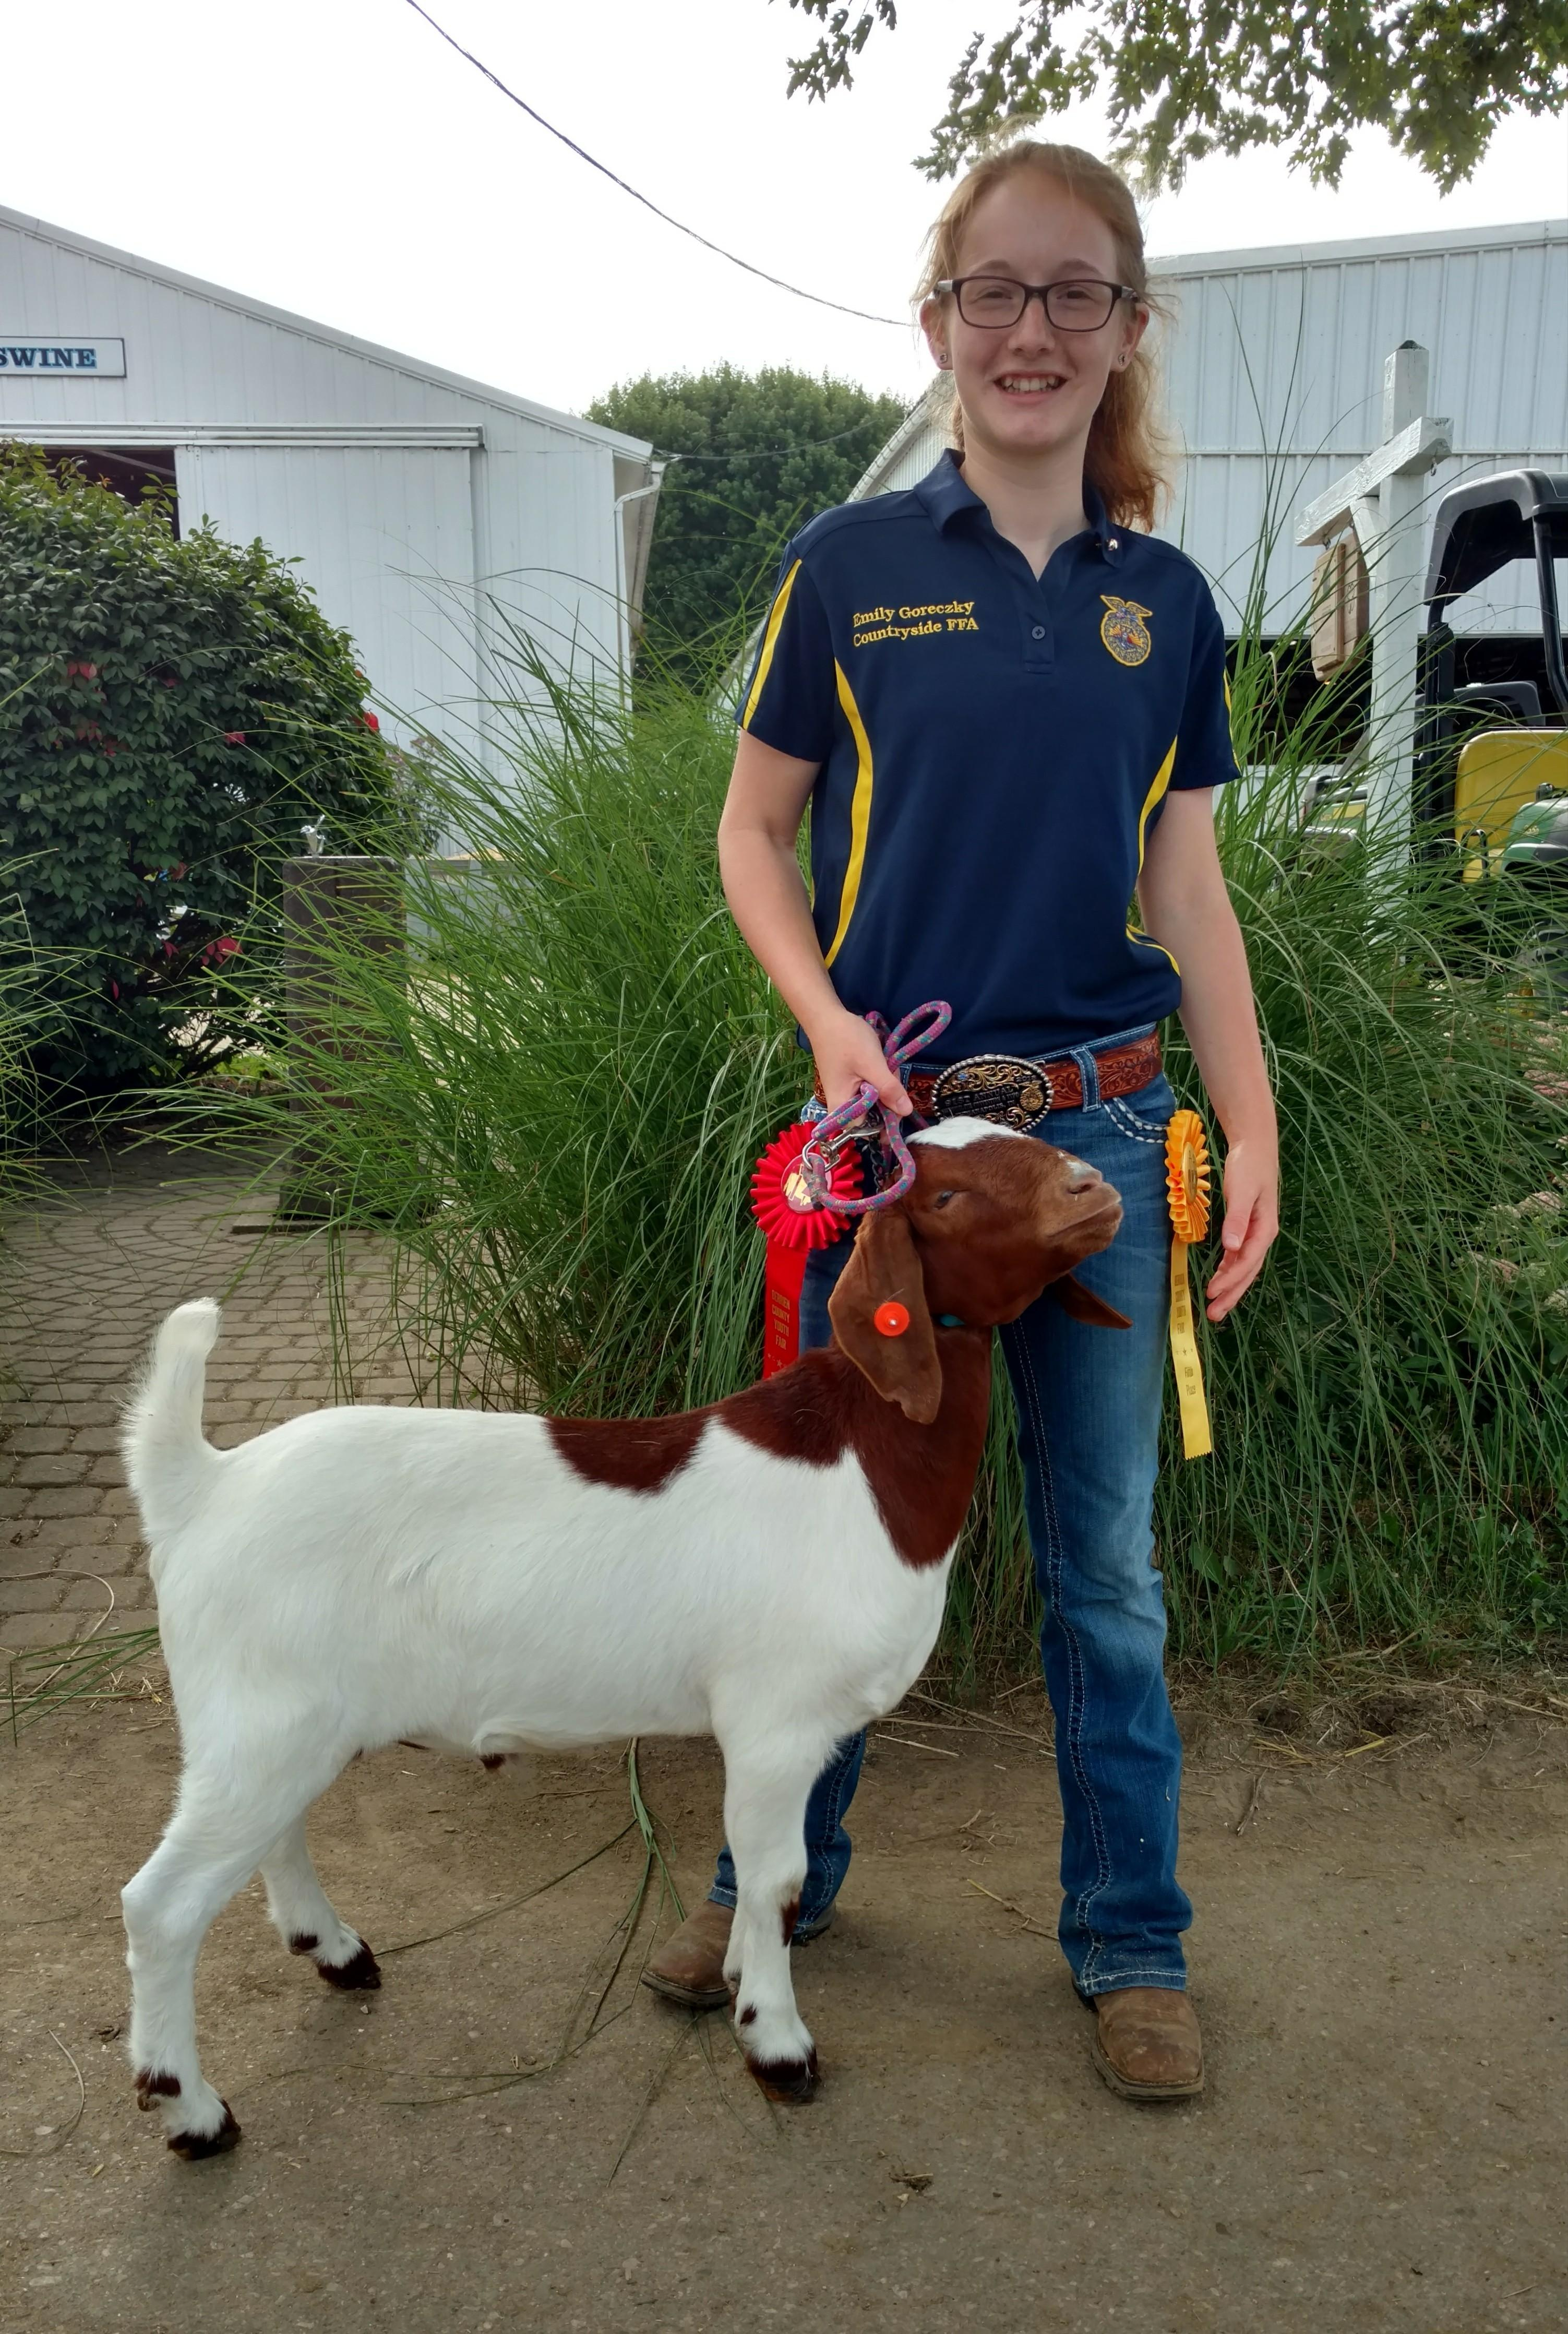 Emily and Goat